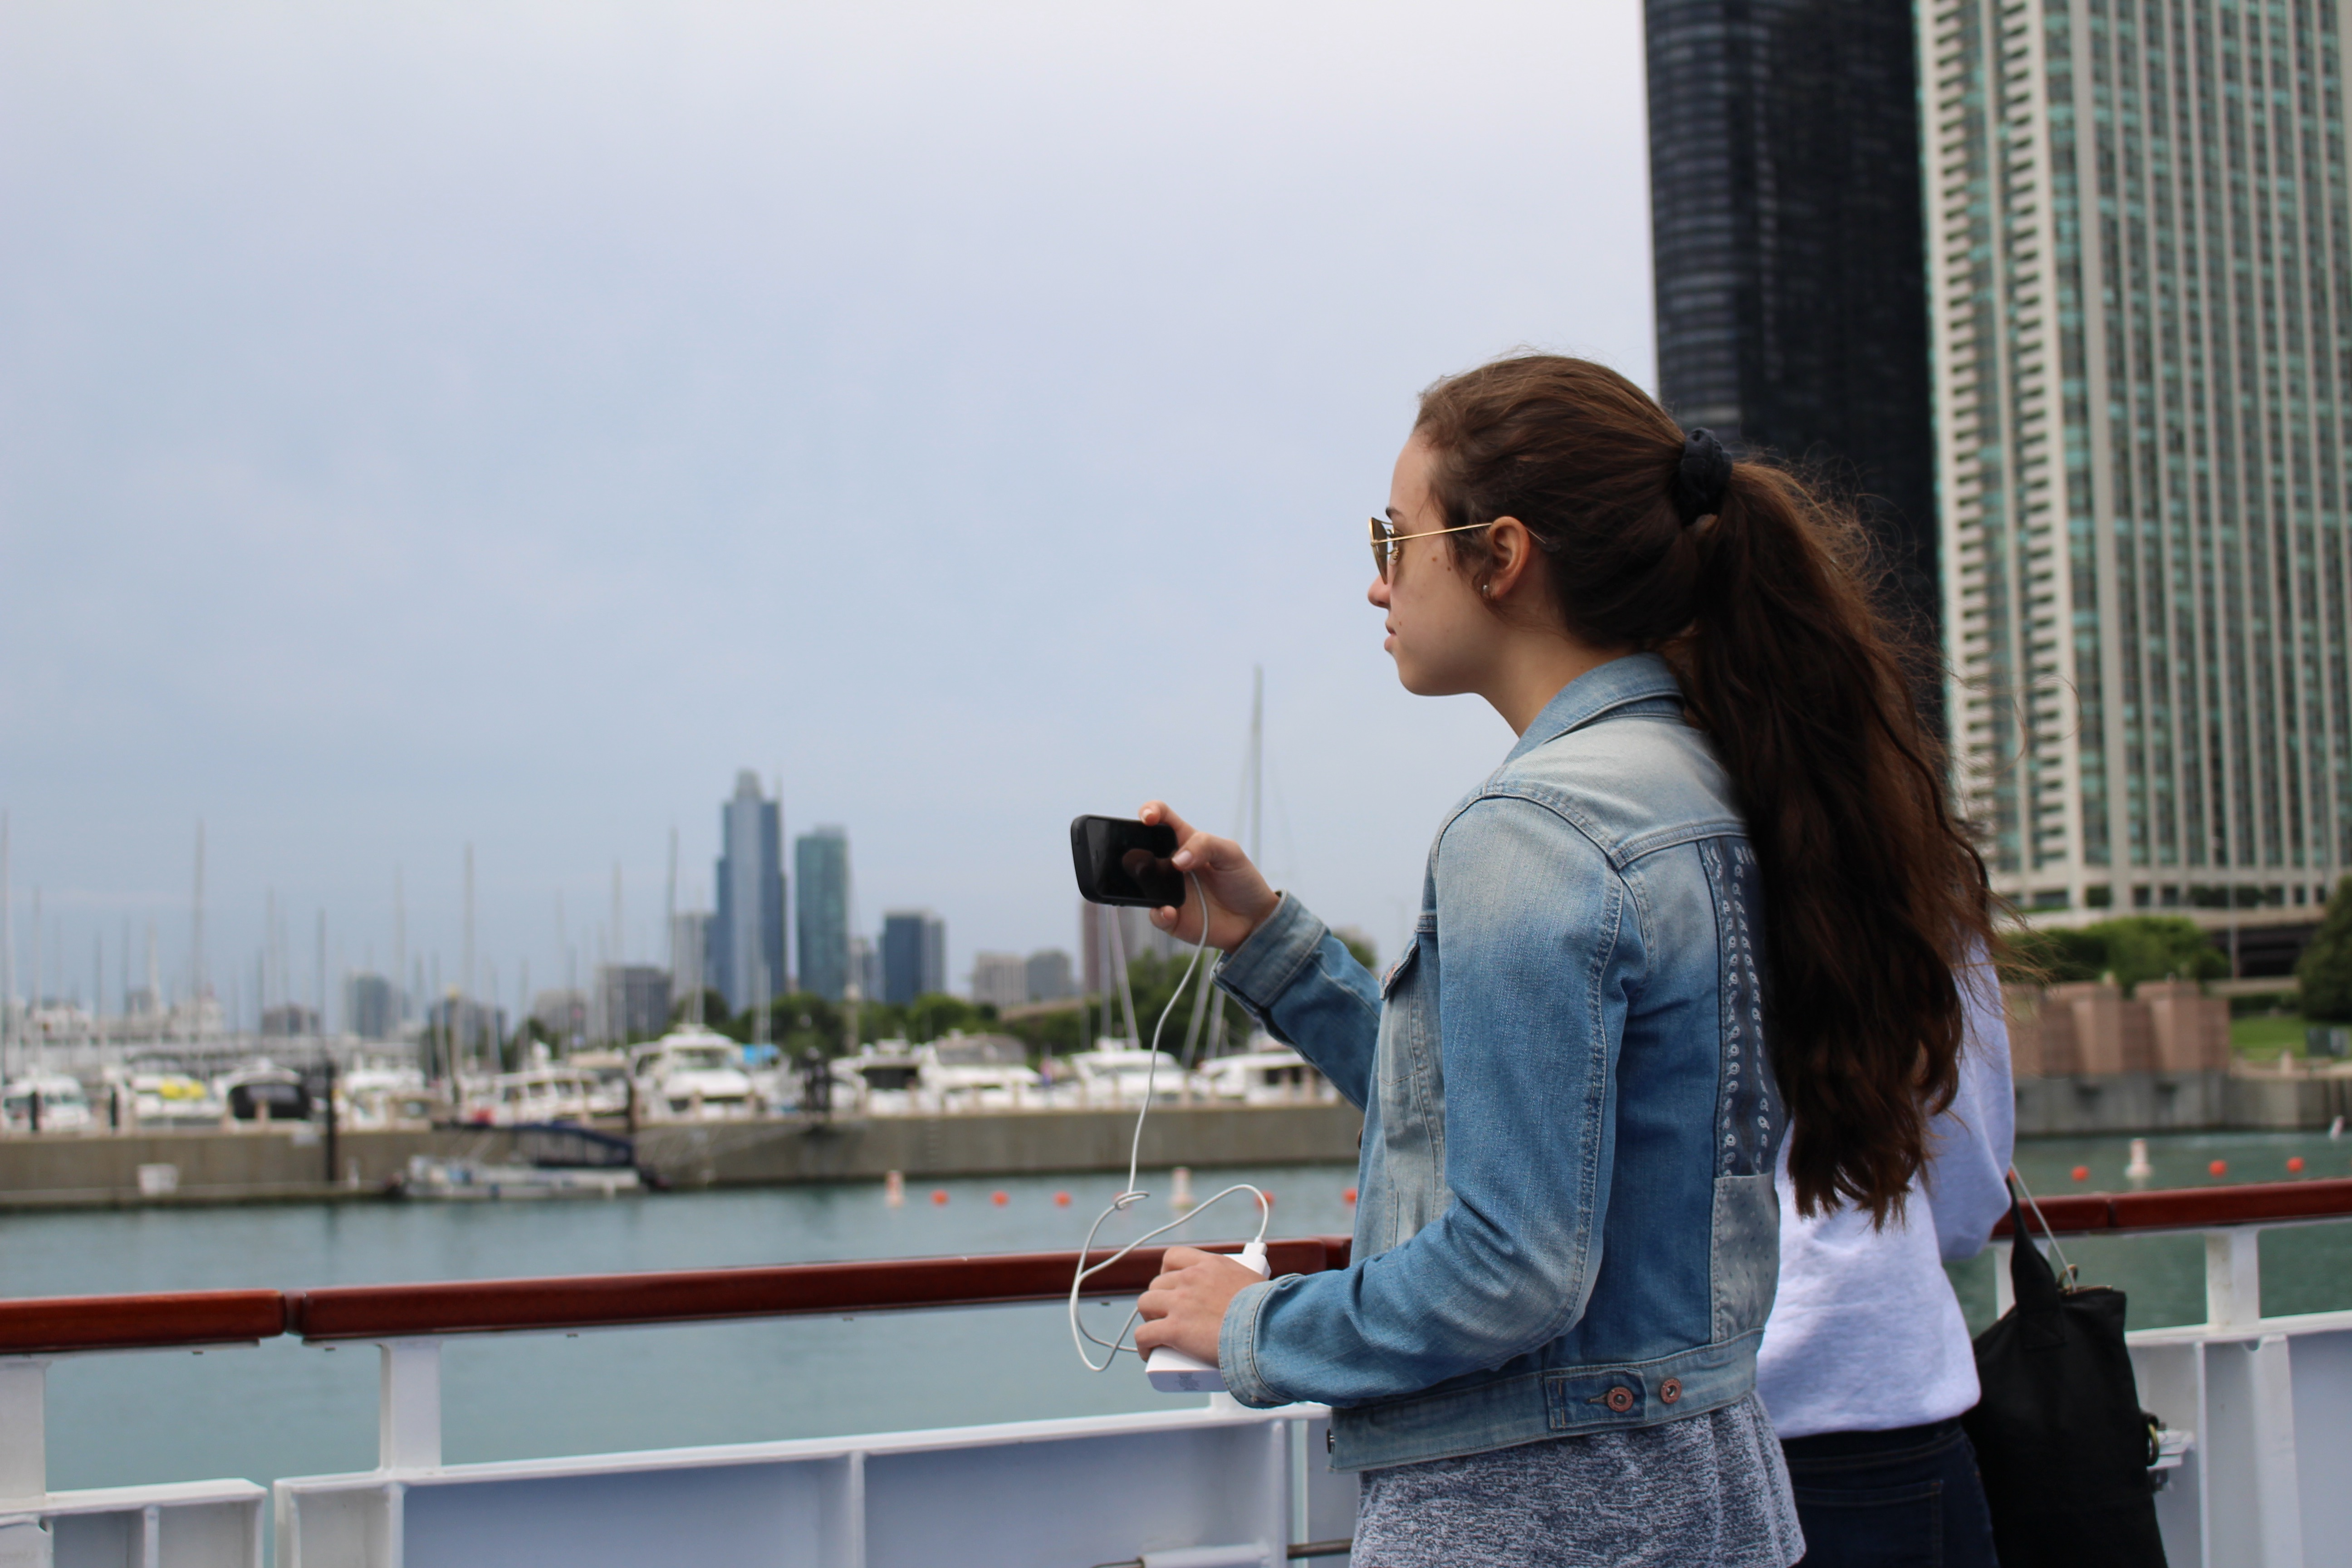 """""""It was very exciting and breath-taking to see a whole new world,"""" Giulia Villanueva of Paraguay said of the Chicago boat tour. <br> She waited for the perfect moment to capture the Chicago skyline."""